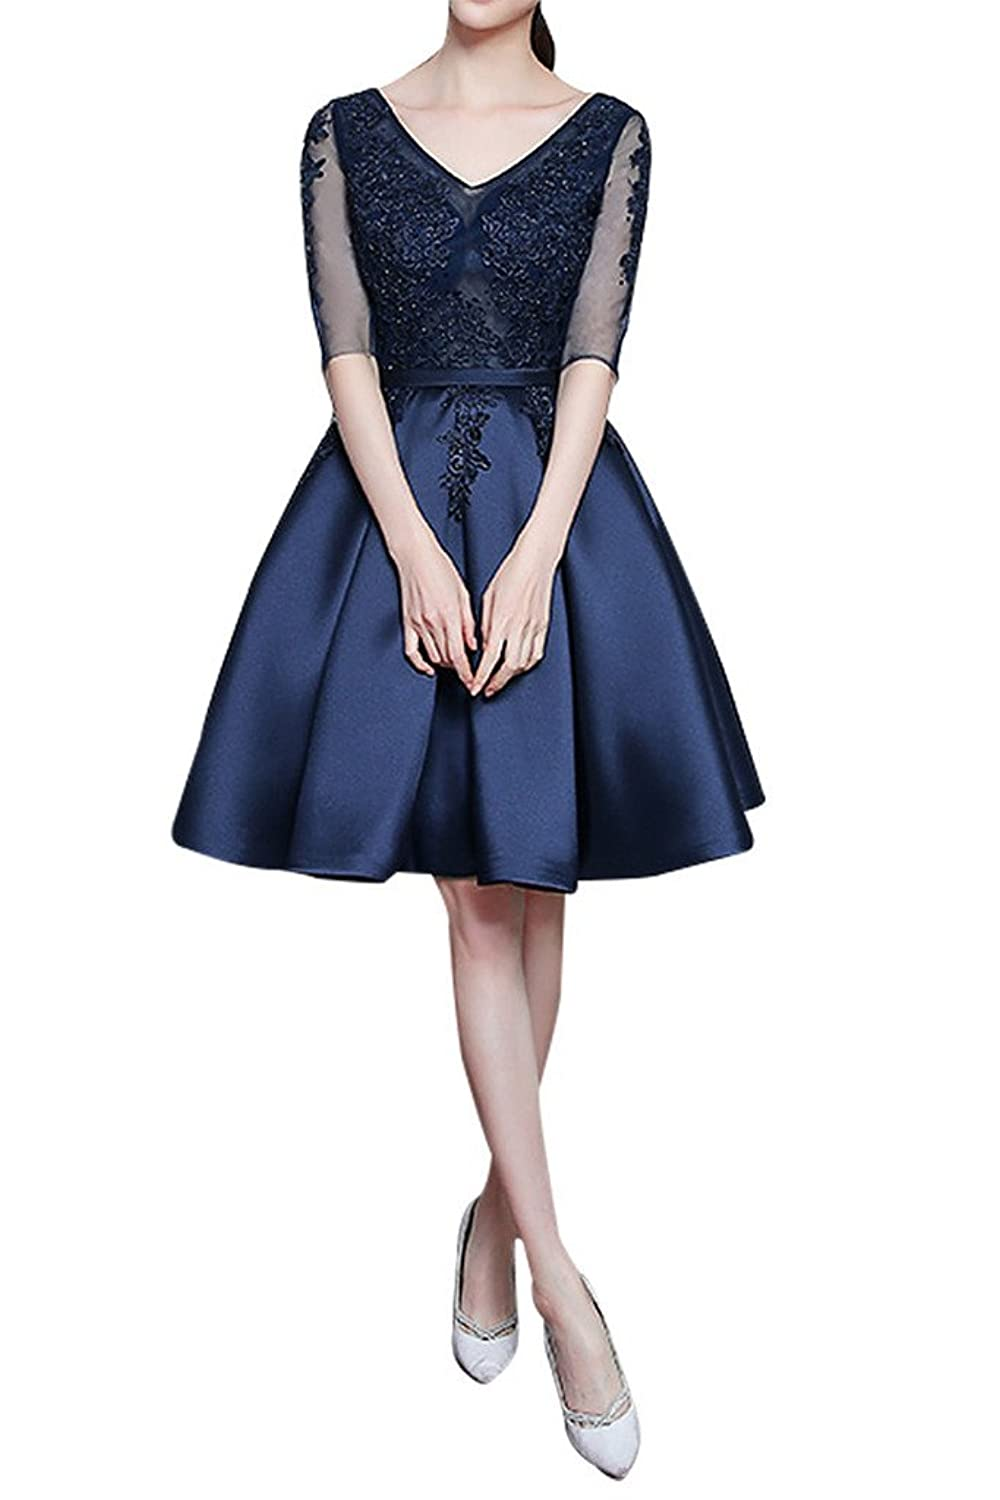 Charm Bridal Appliqued Women Cocktail Girl Homecoming Party Dress with Sleeves